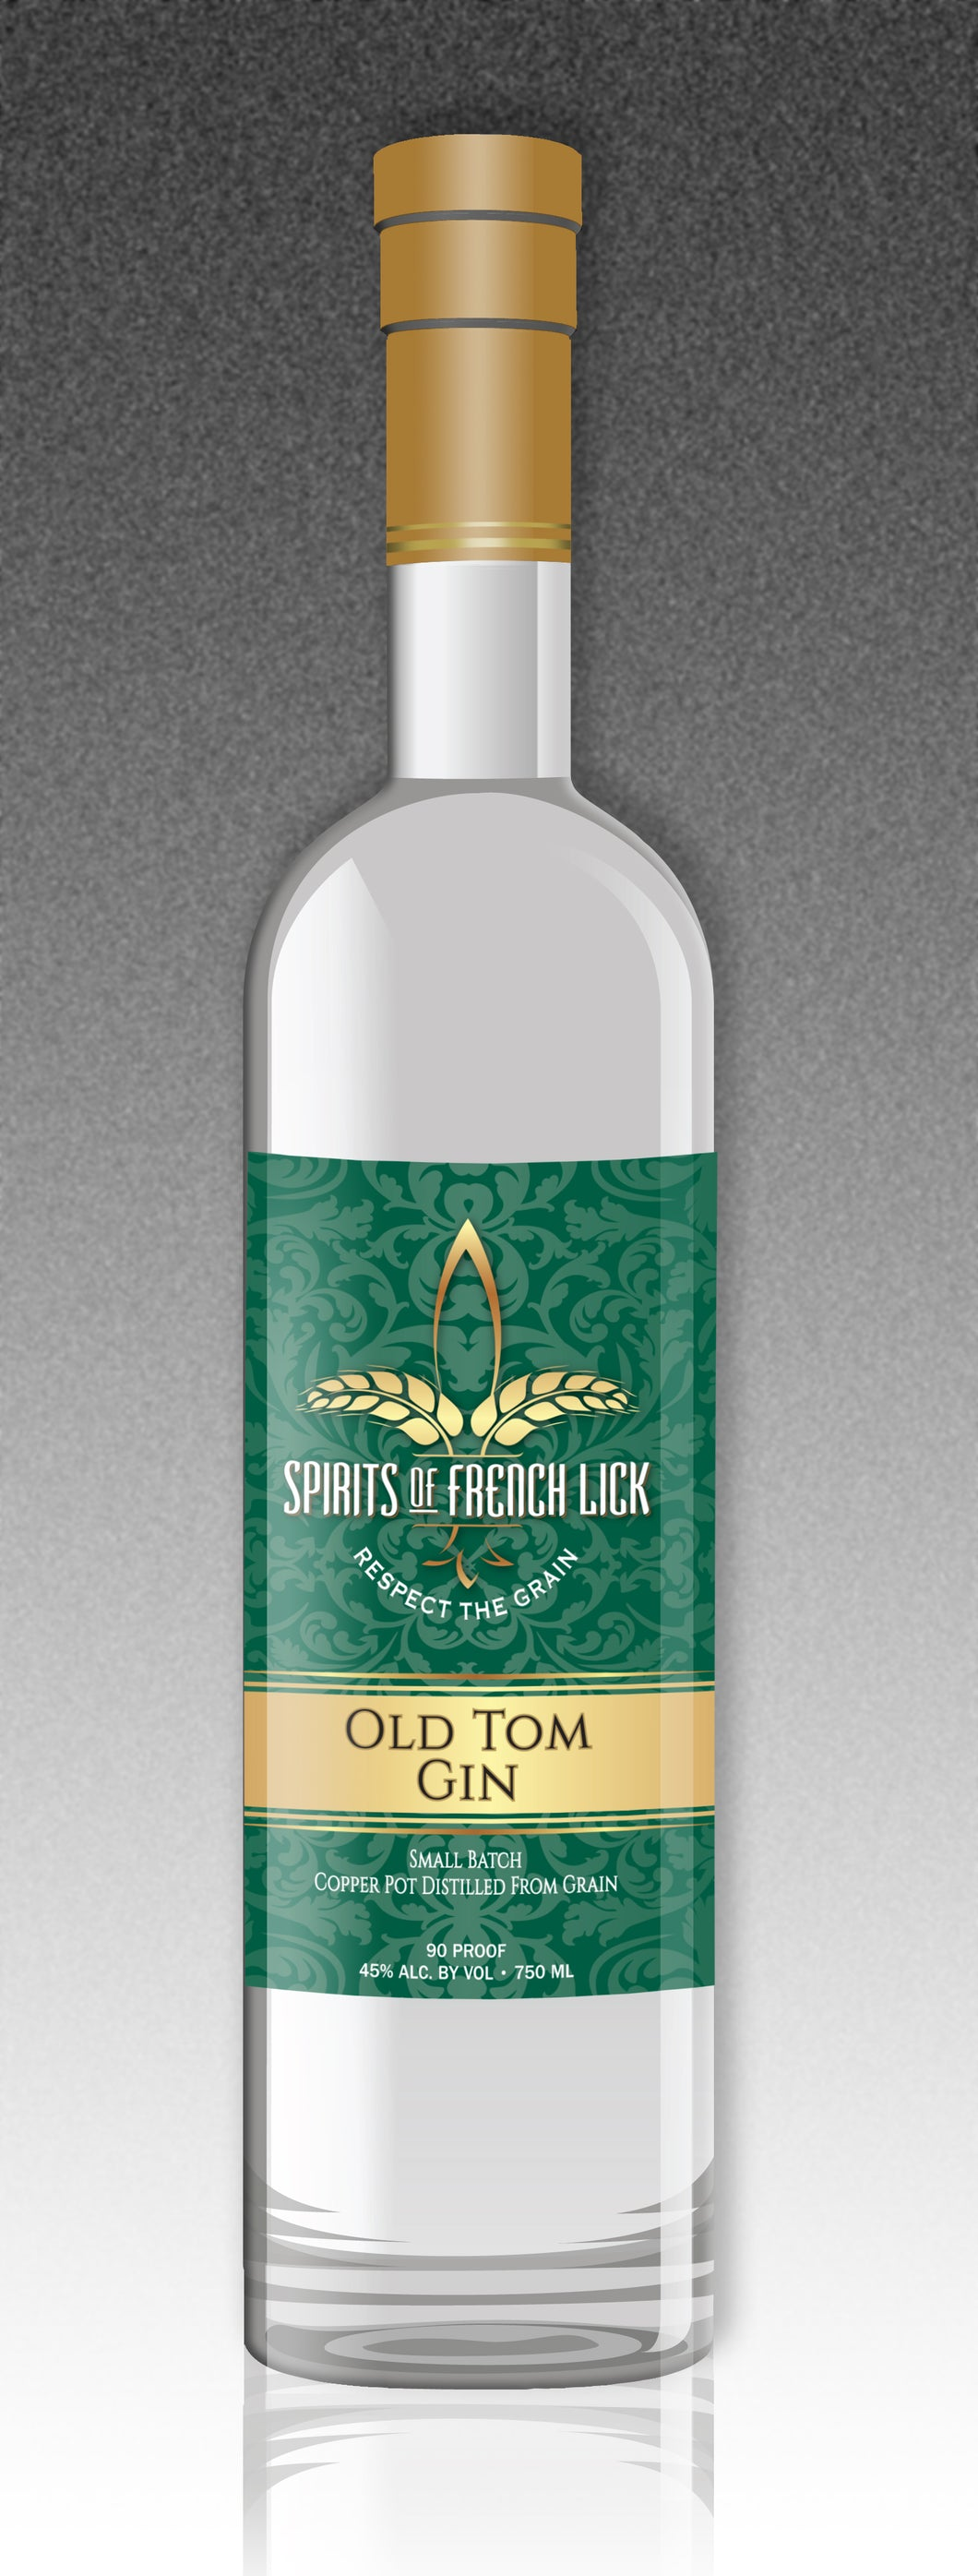 Spirits Of French Lick Old Tom Gin